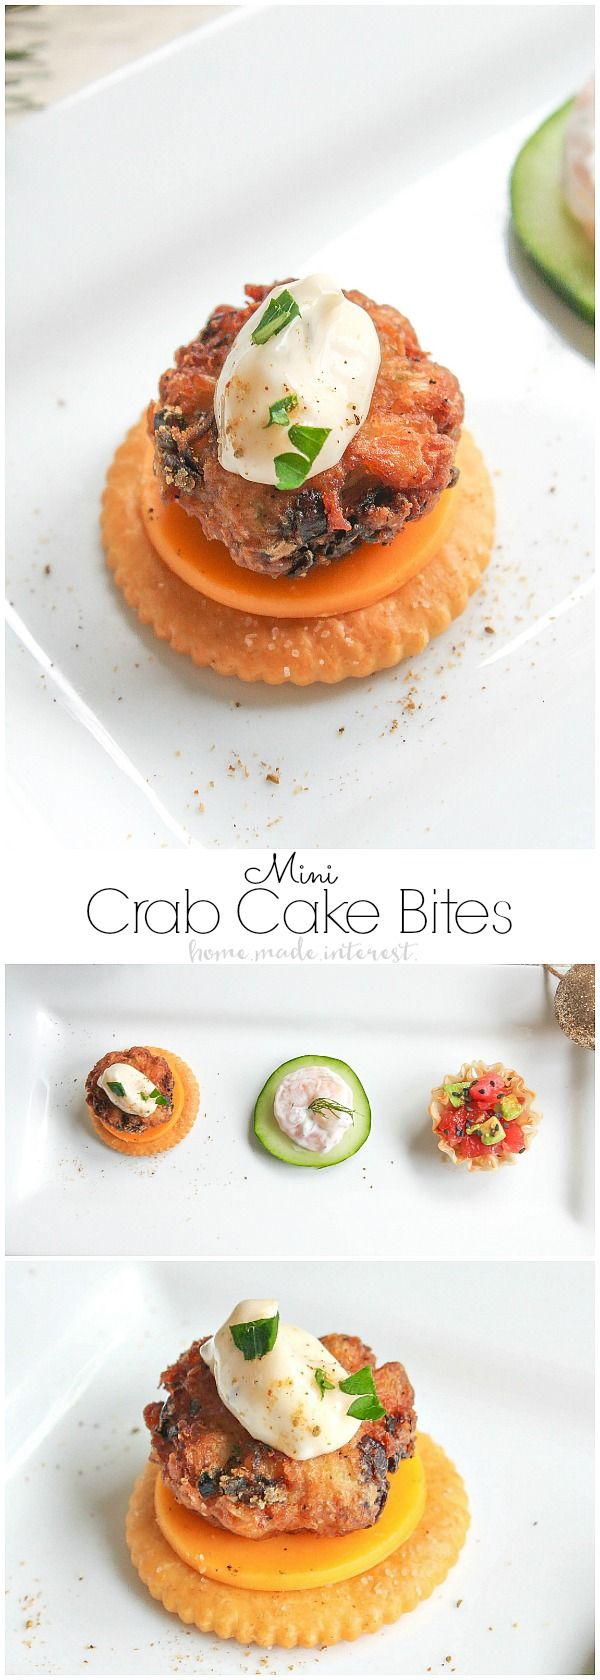 Crab Cakes Made With Ritz Crackers